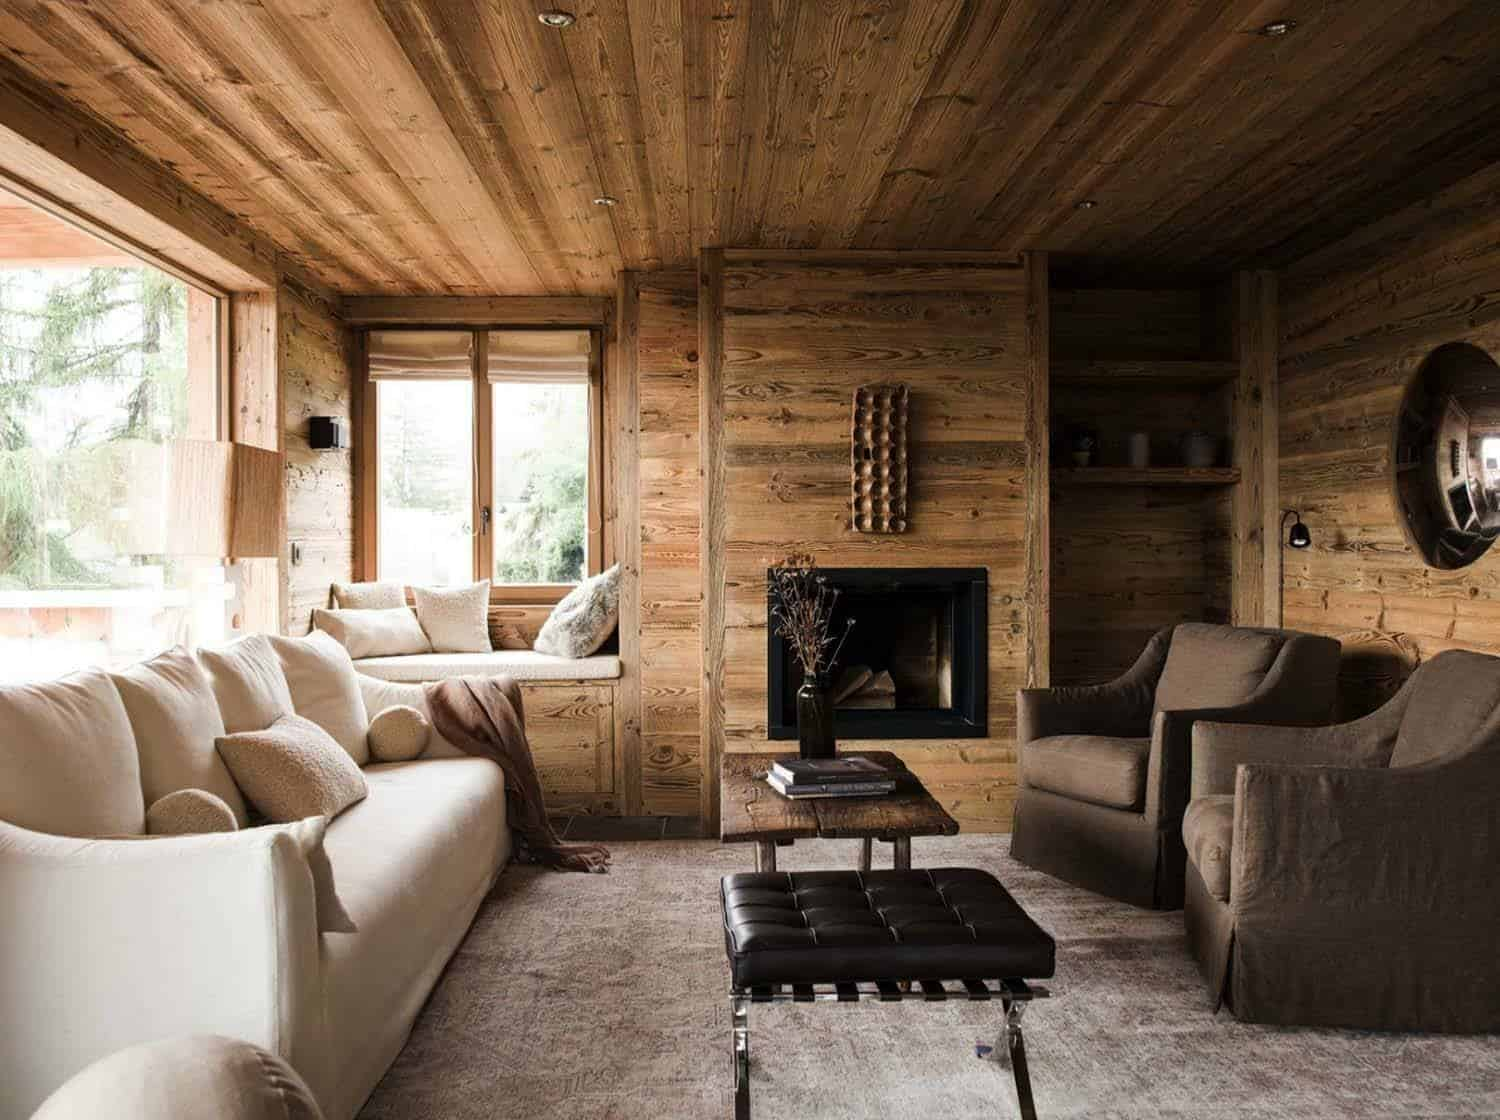 Schlafzimmerdecke Gestalten Rustic Mountain Chalet In Switzerland Provides Relaxed